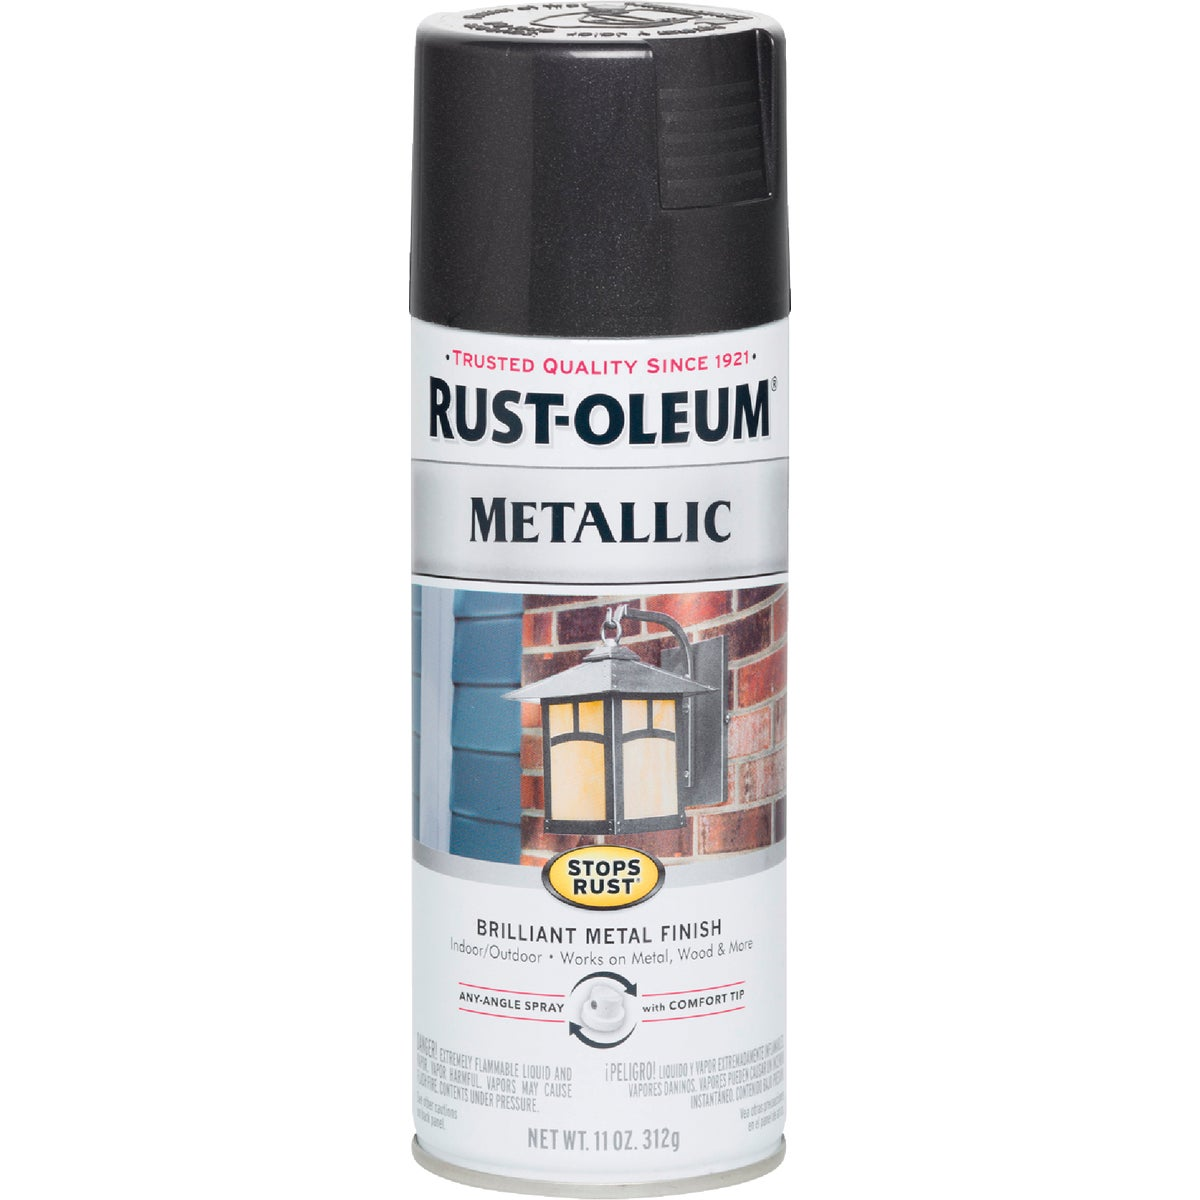 BL NGHT MTLC SPRAY PAINT - 7250-830 by Rustoleum